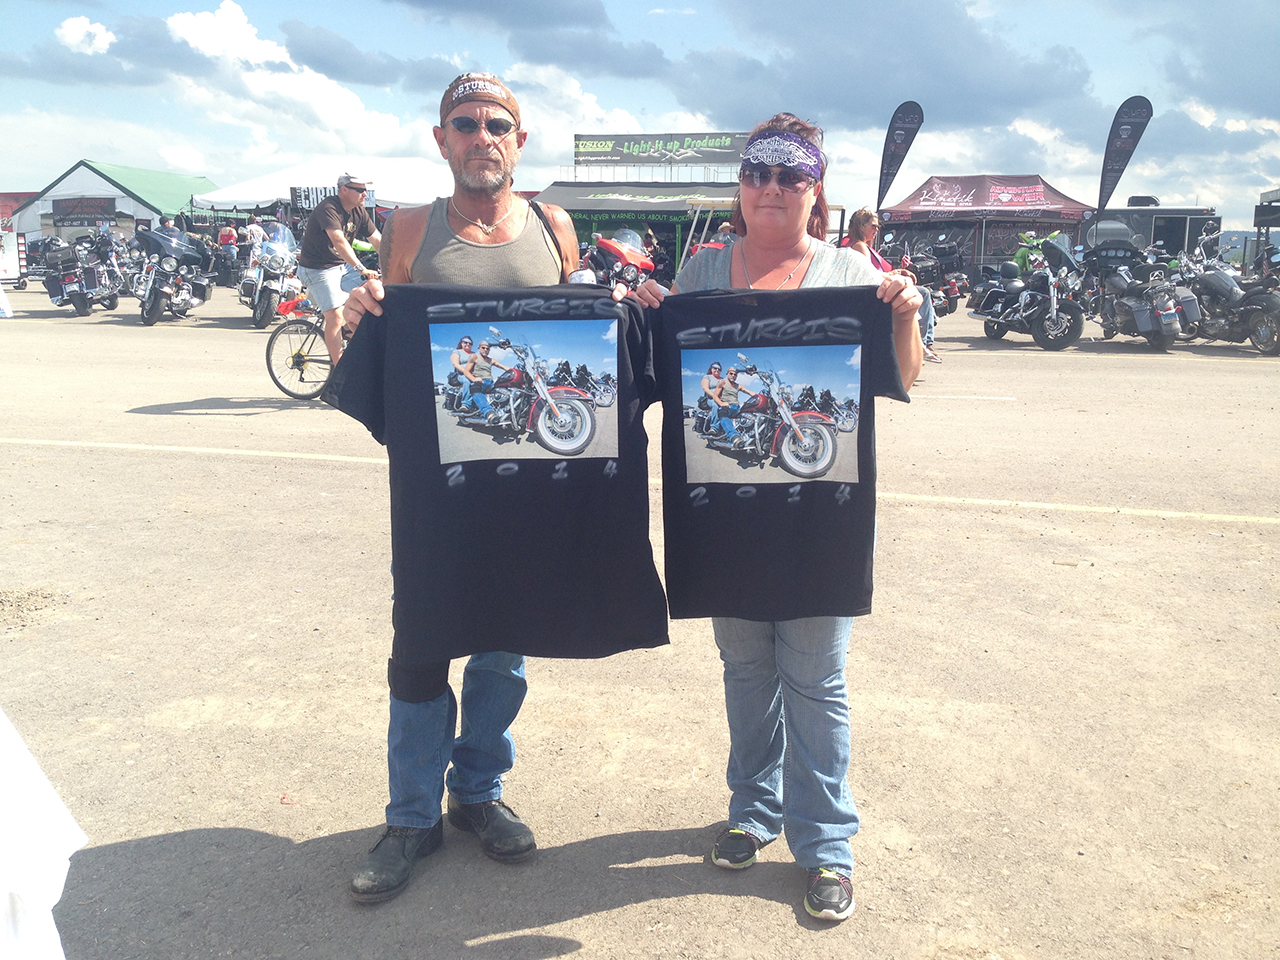 These shirts were our biggest hits! Photo's of people on their hogs.